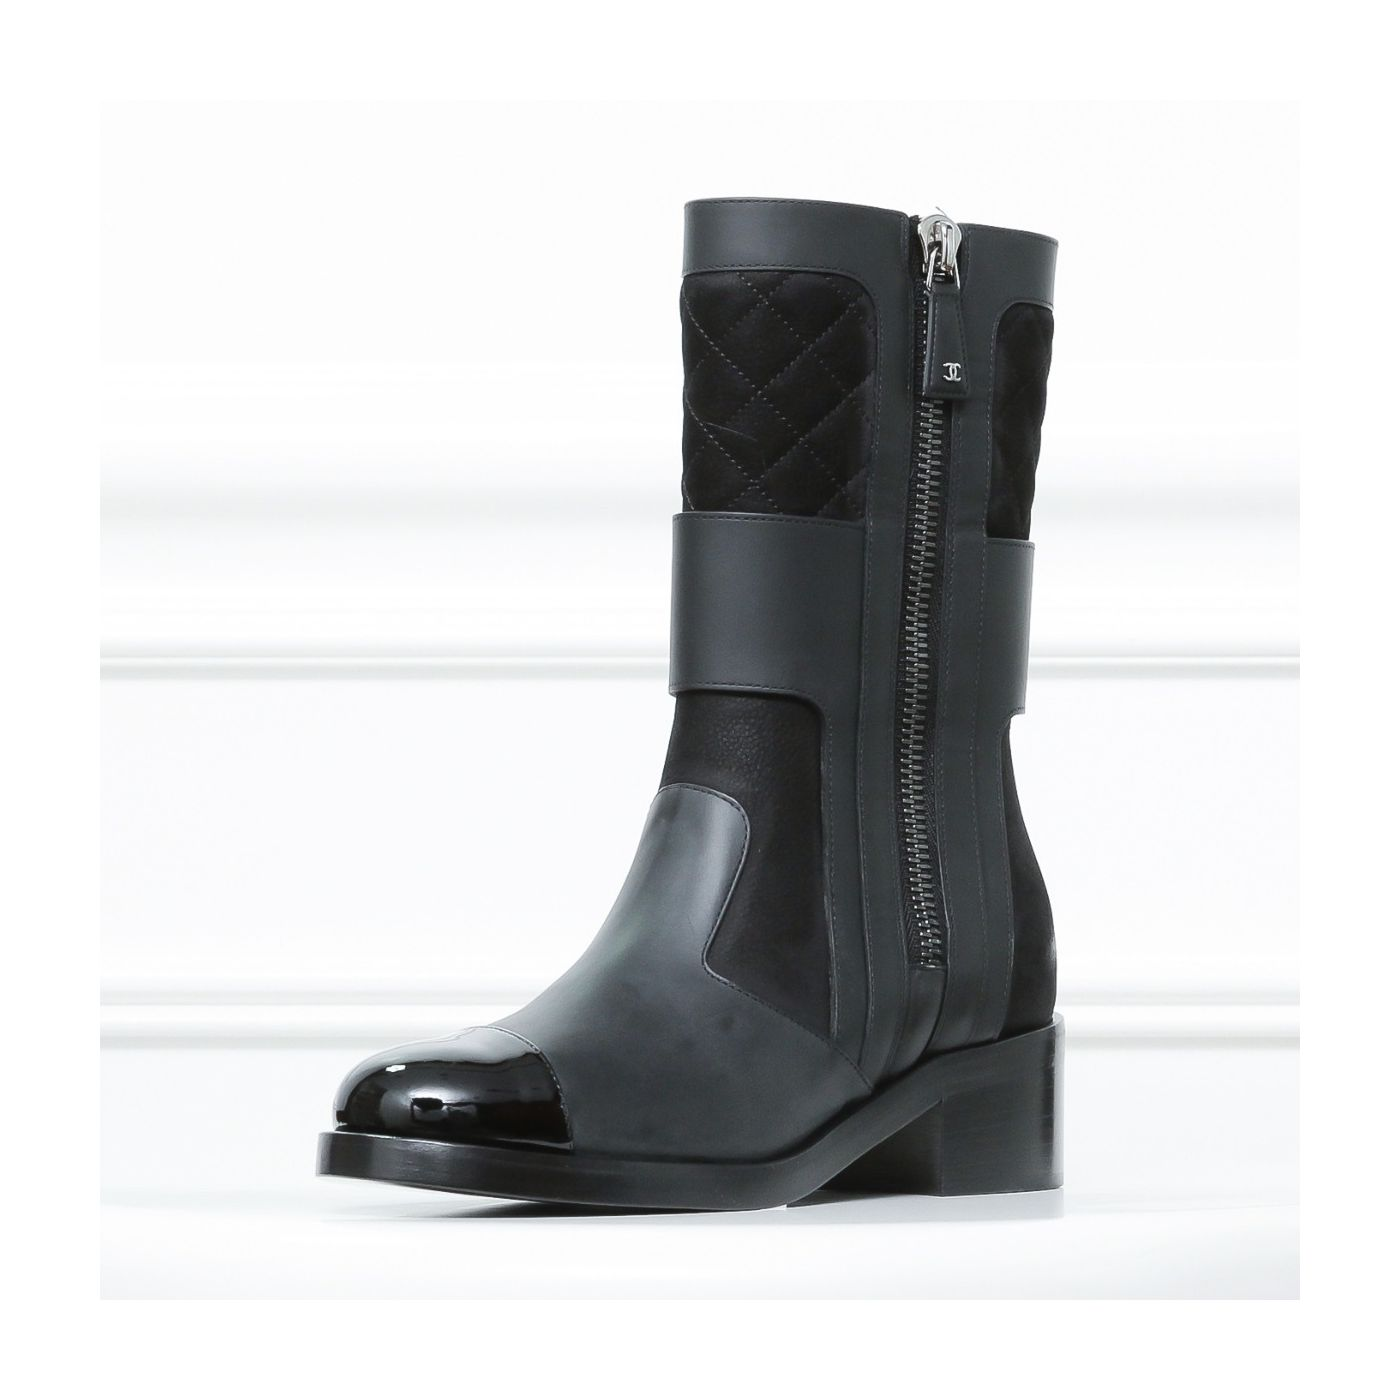 Chanel Black /Brown High Zip Up Boots 36.5